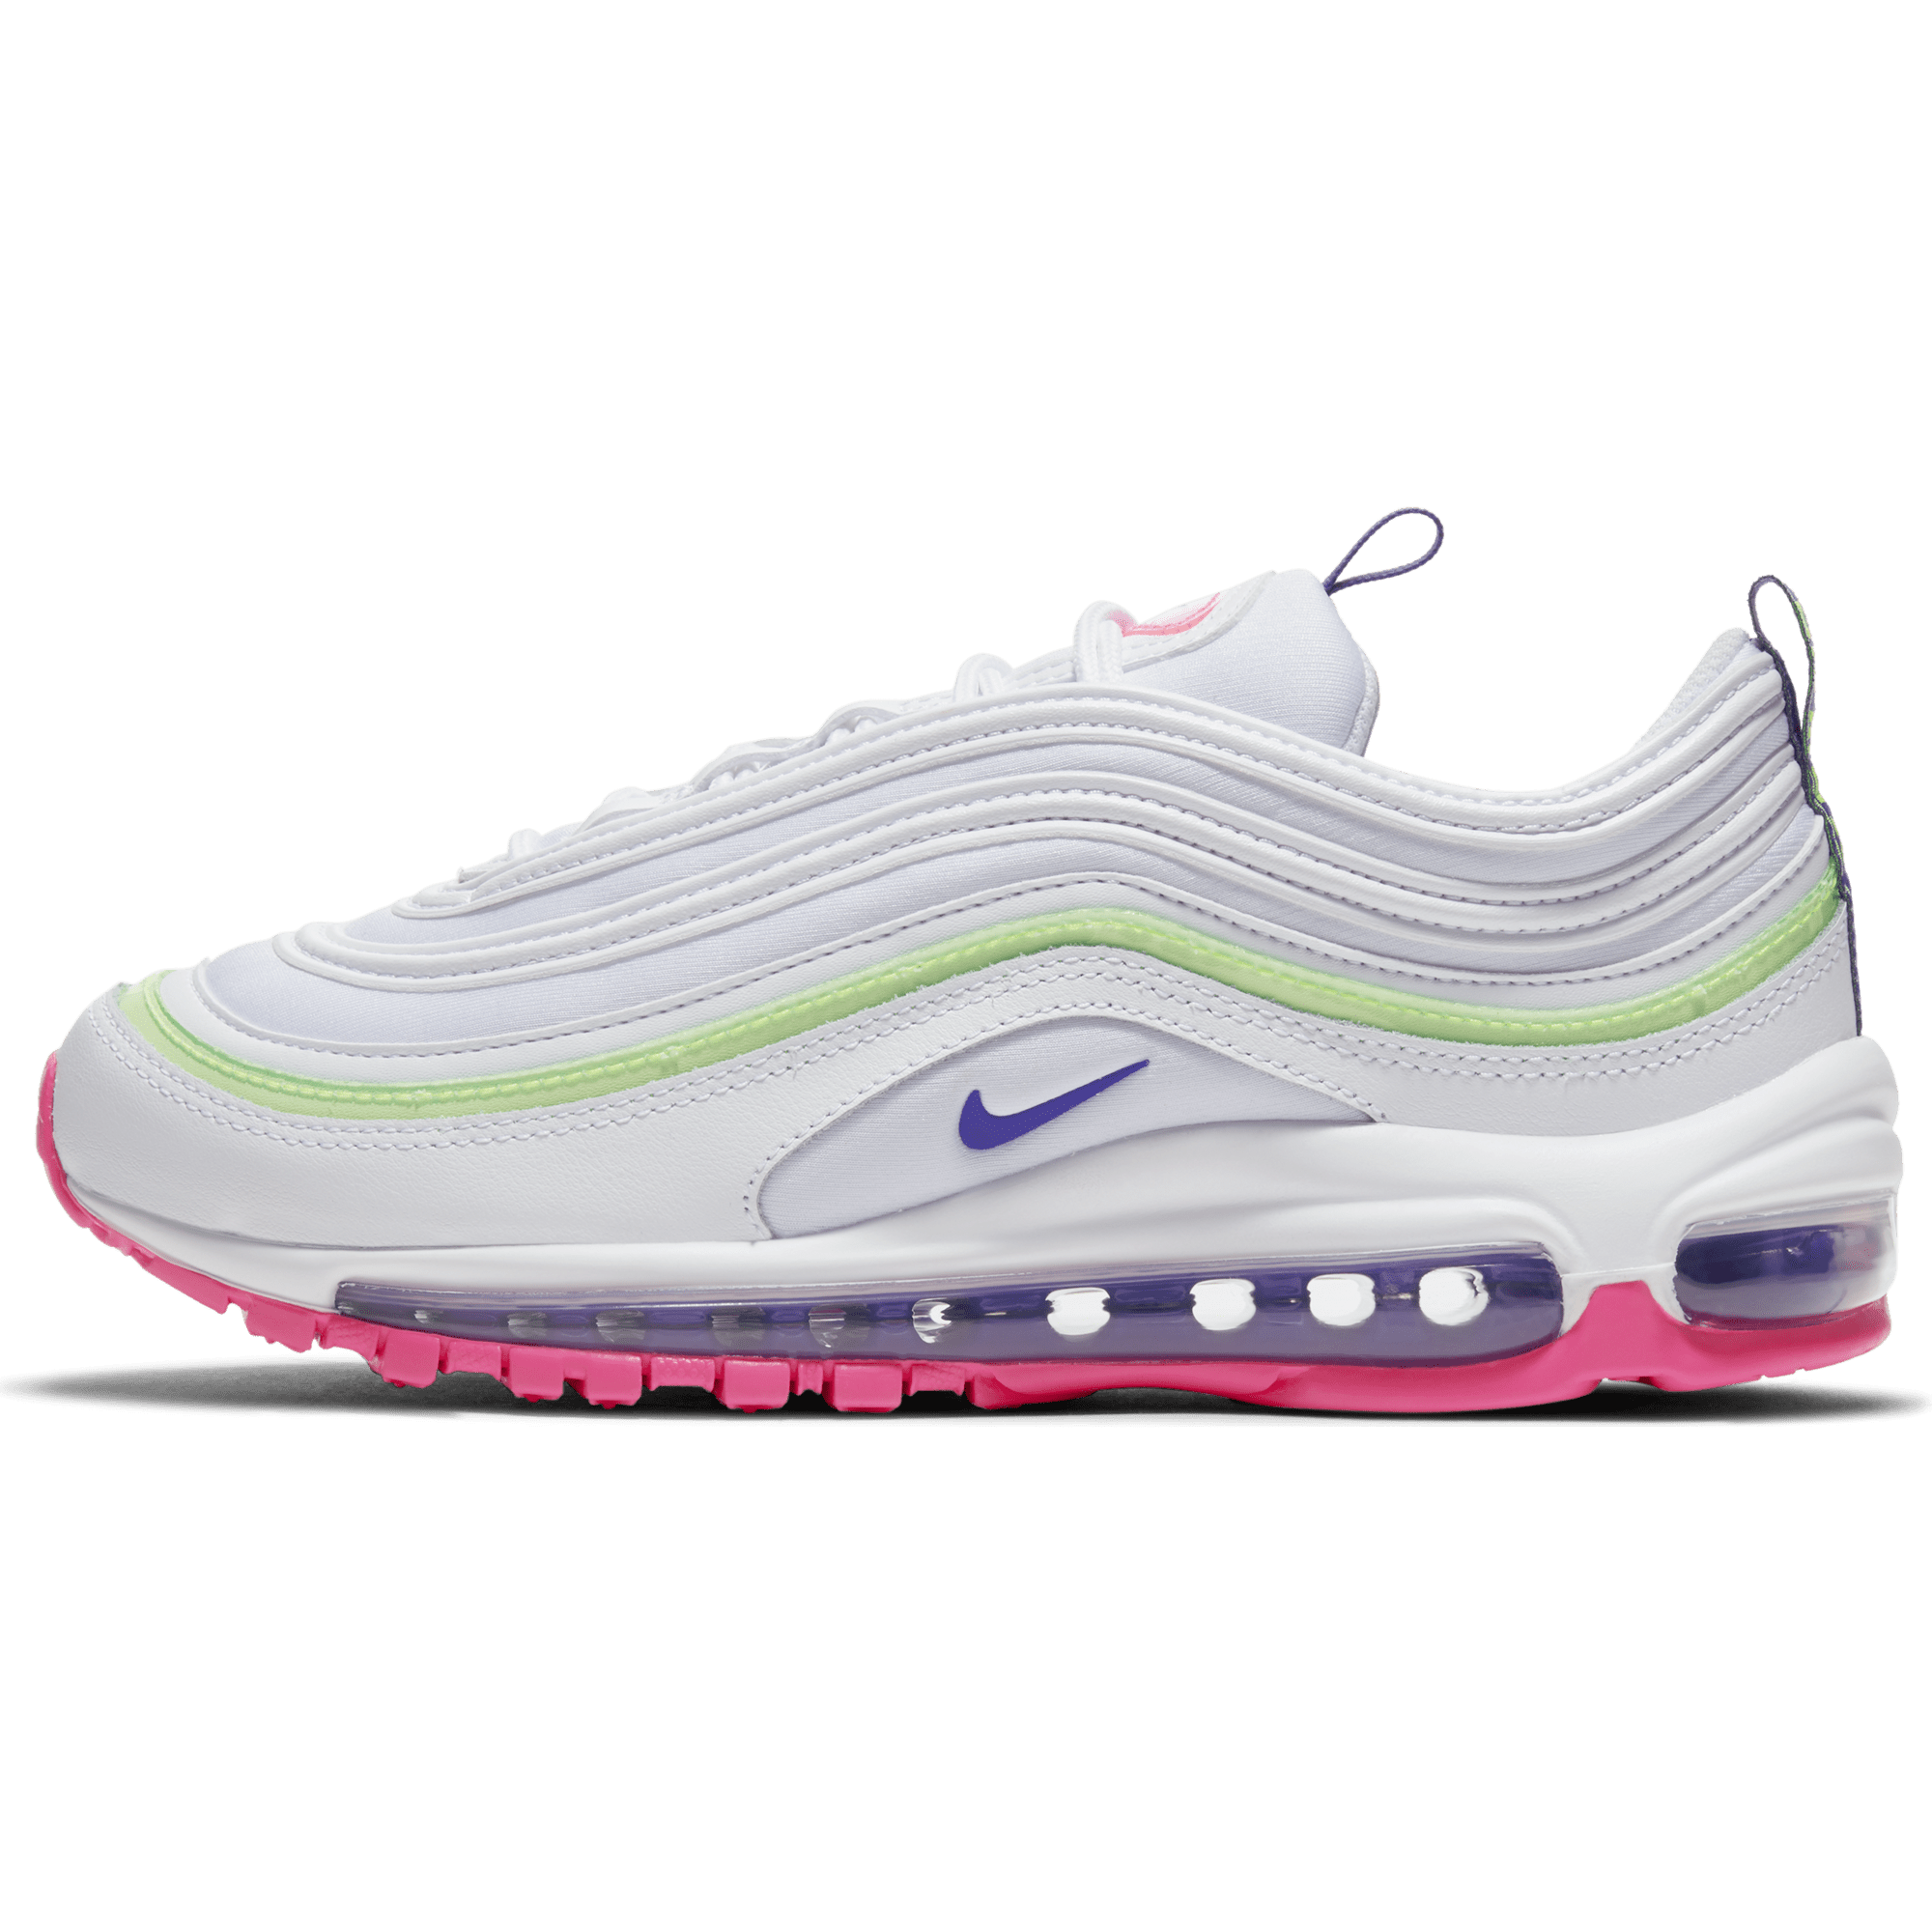 Nike FOOTWEAR Nike Air Max 97 - Women's